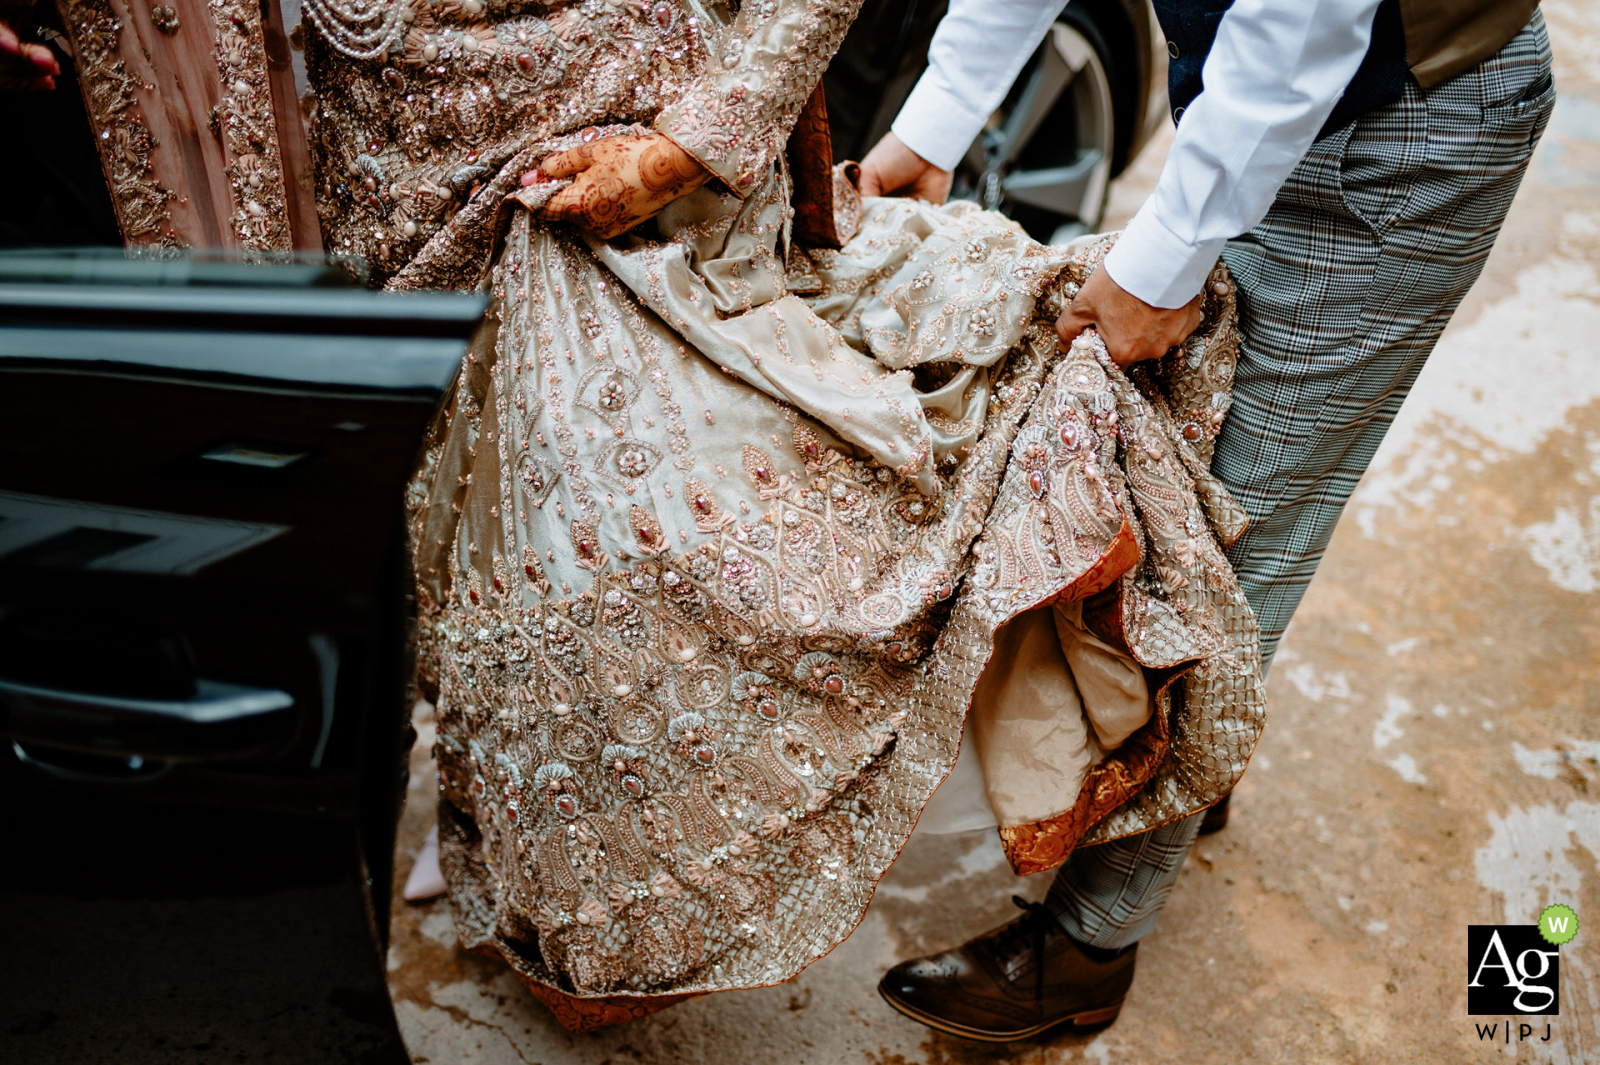 Birmingham, UK wedding reportage detail picture showing some Helping hands as the bride gets into an auto